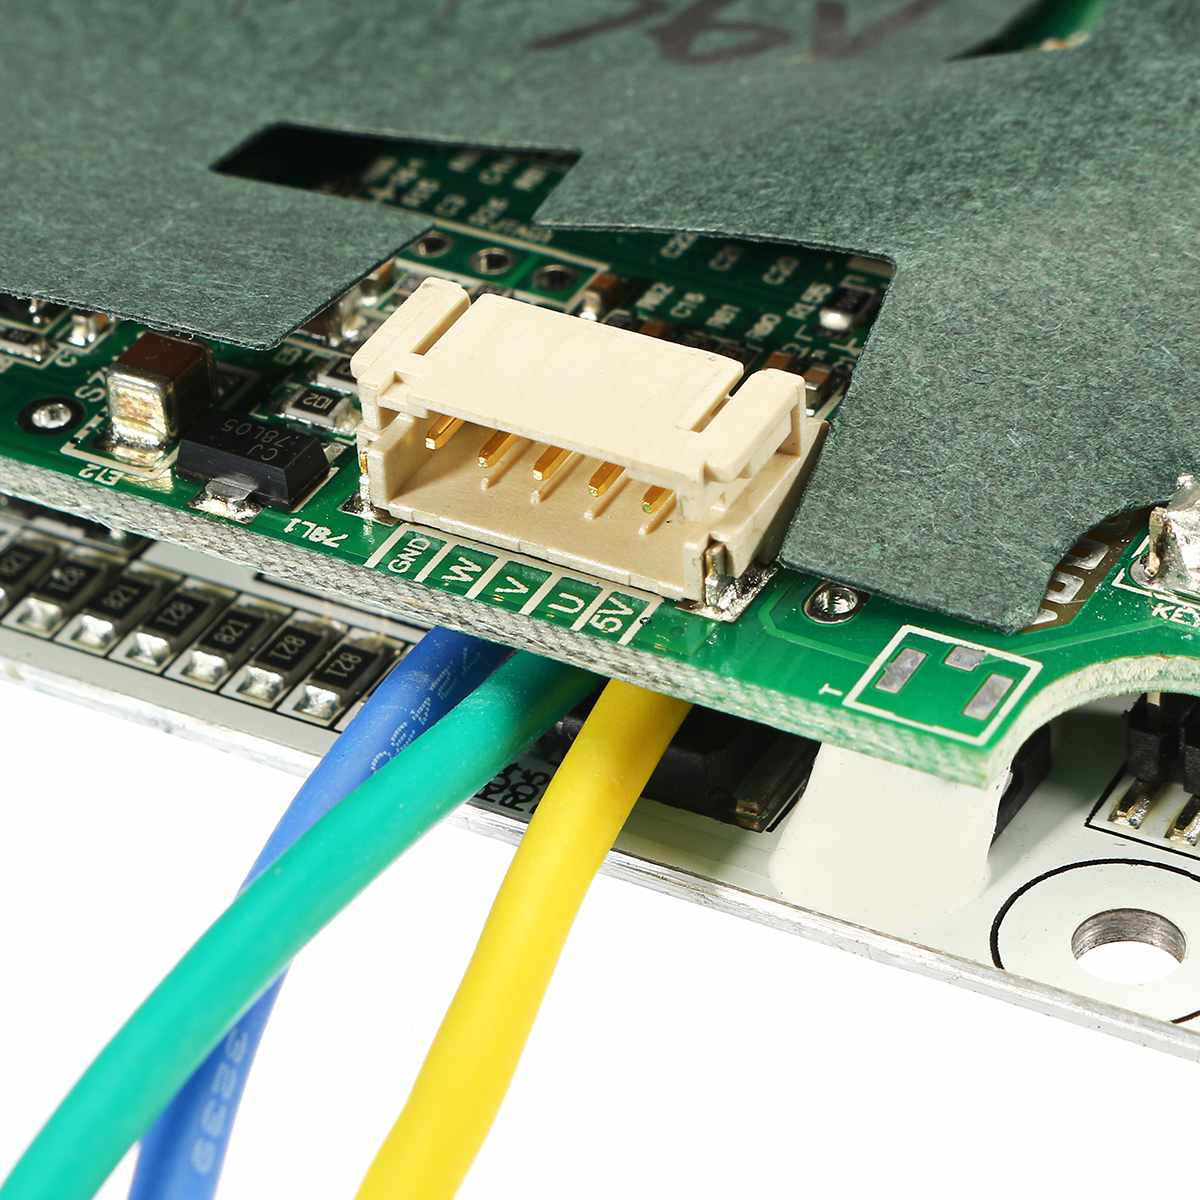 24/36V Single Belt Motor Electric Skateboard Controller Longboard ESC Substitute Parts Scooter Mainboard Instrument Tools 45